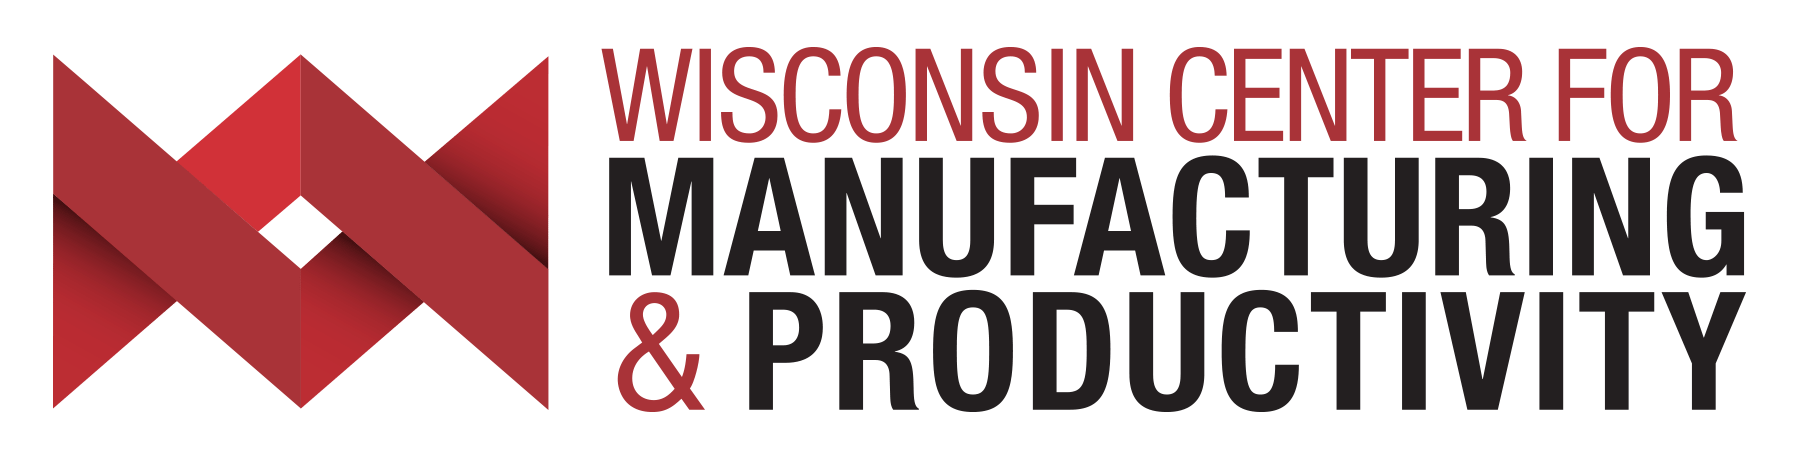 Wisconsin Center for Manufacturing & Productivity logo